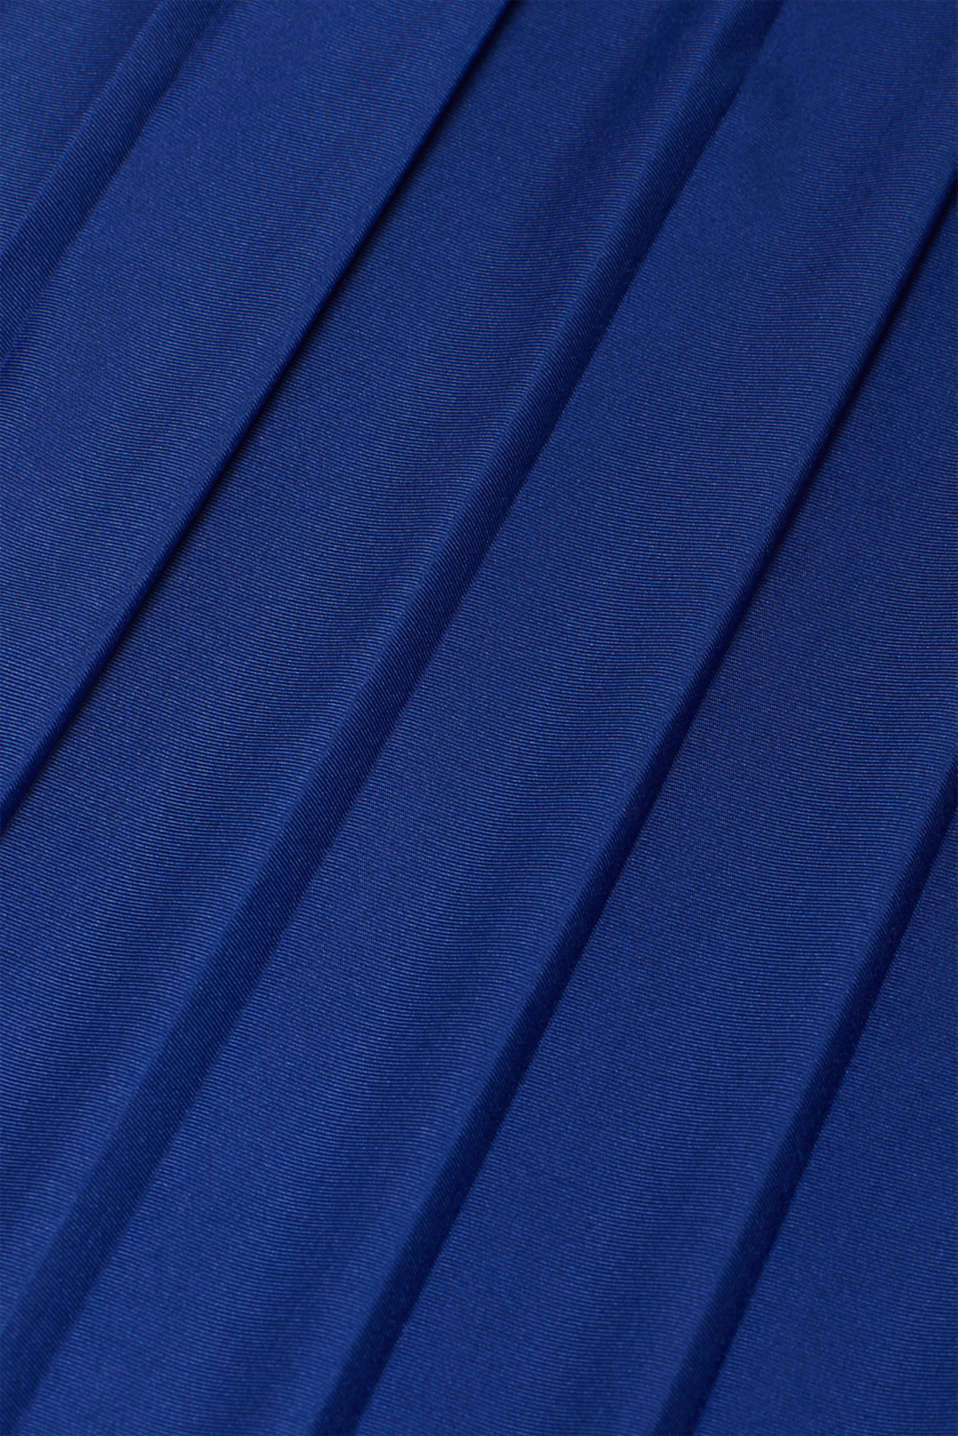 Lace-trimmed dress with a pleated skirt, LCDARK BLUE, detail image number 4